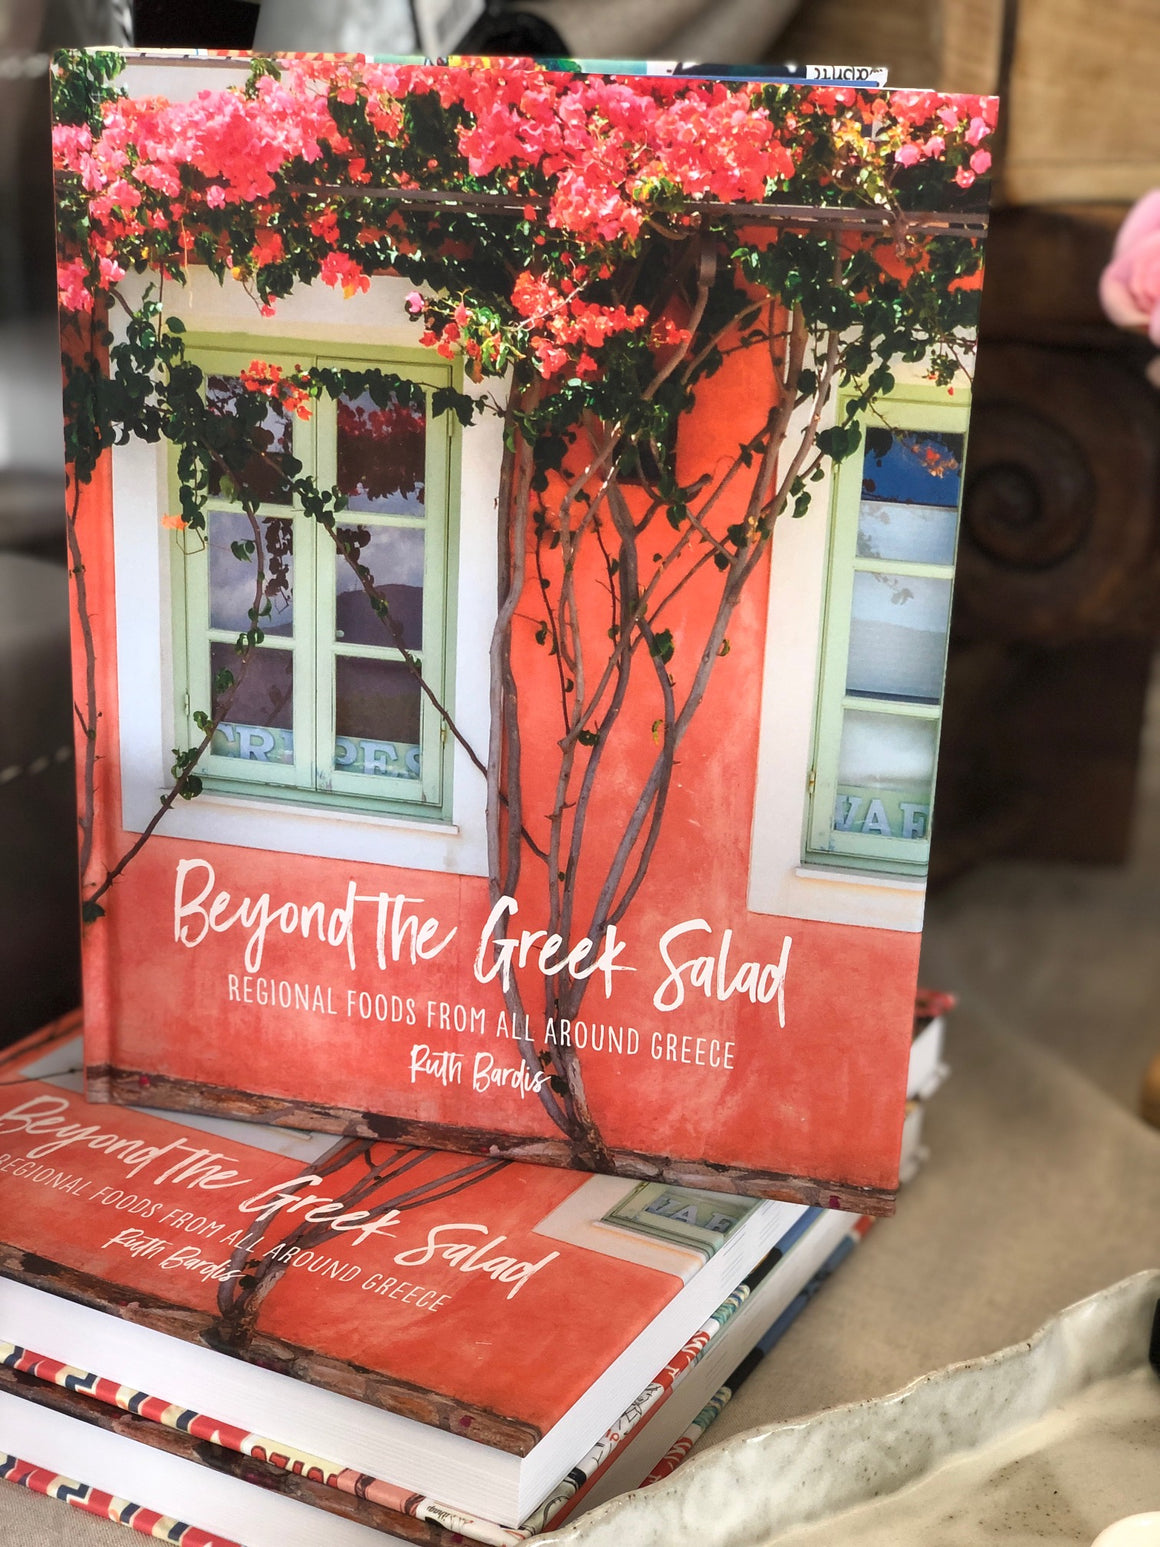 Beyond the Greek Salad by Ruth Bardis